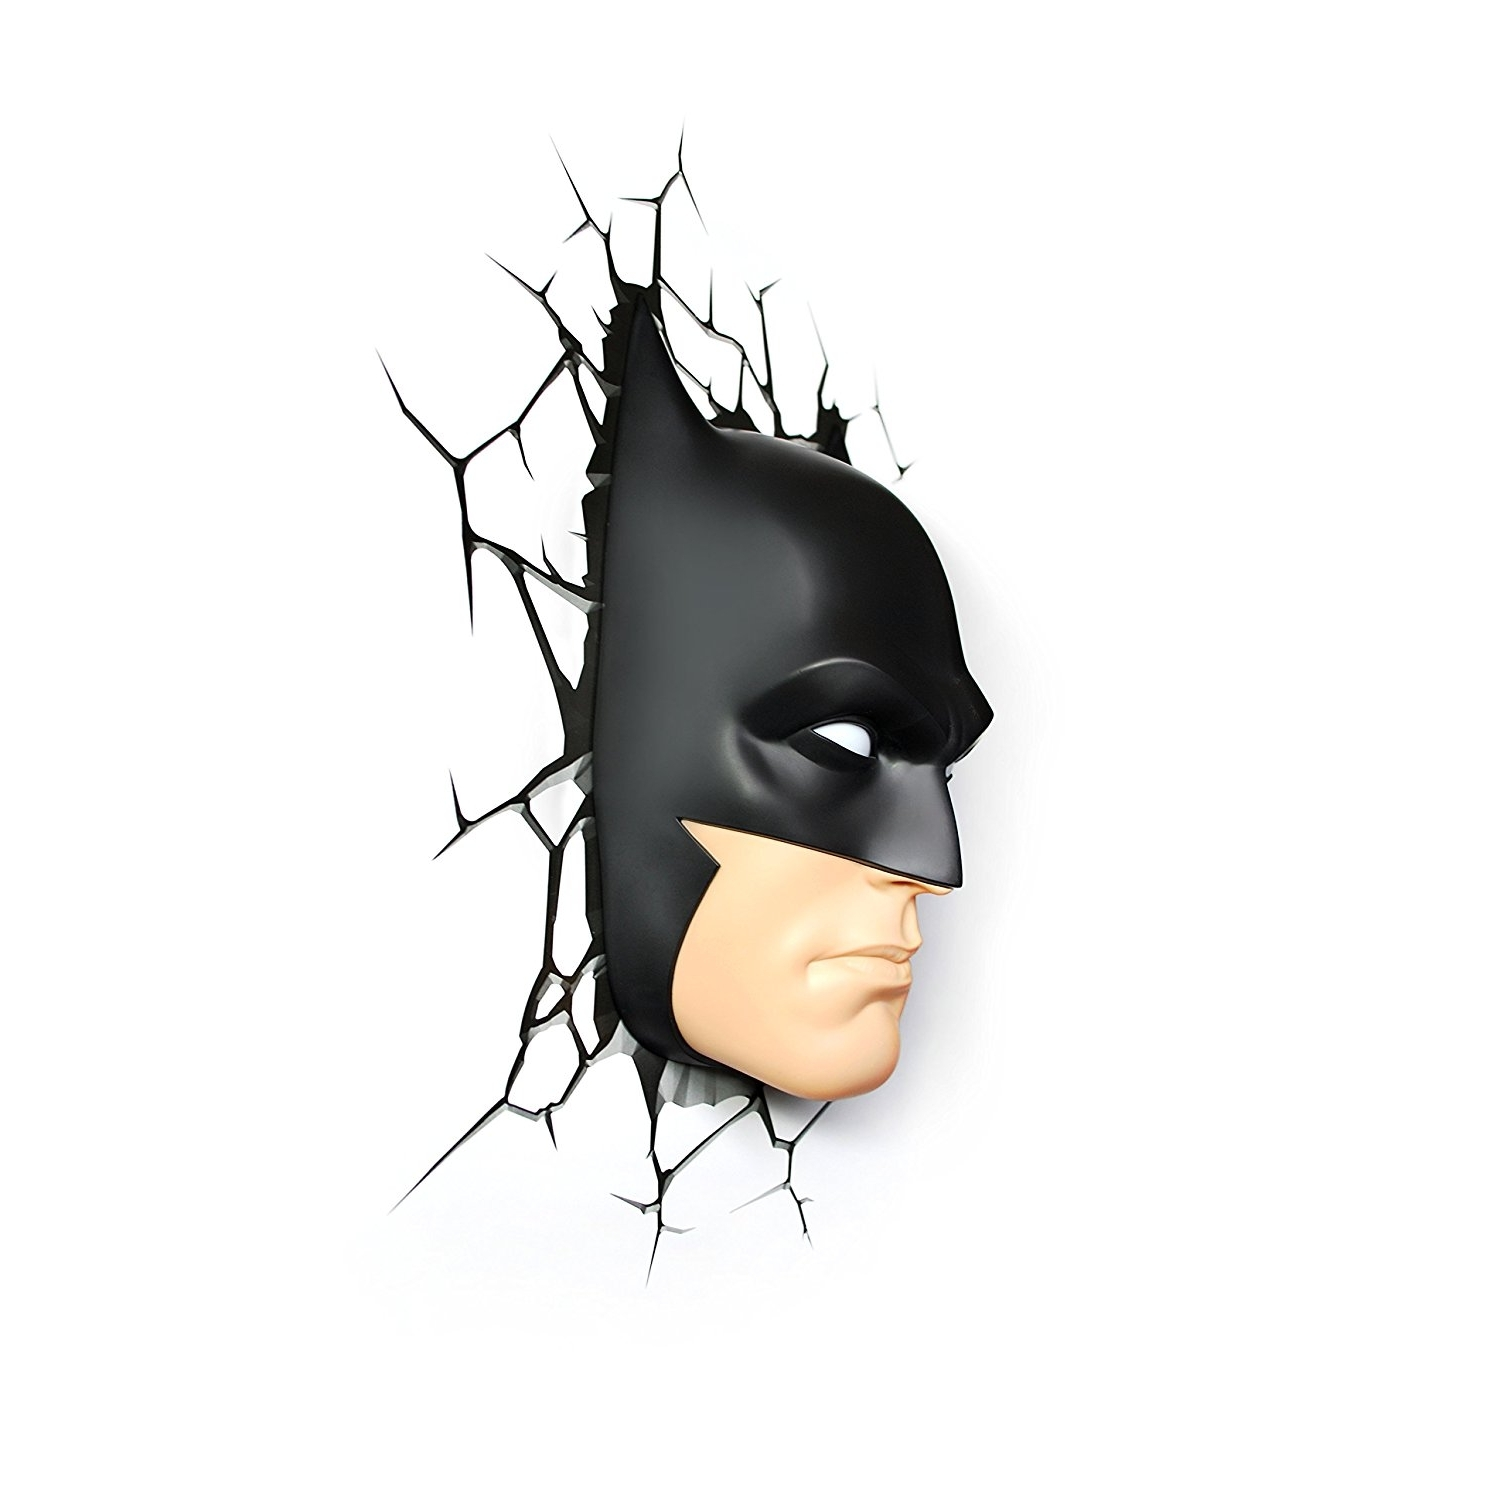 Amazon: 3Dlightfx Batman Mask Light: Toys & Games Intended For Favorite Batman 3D Wall Art (View 1 of 15)